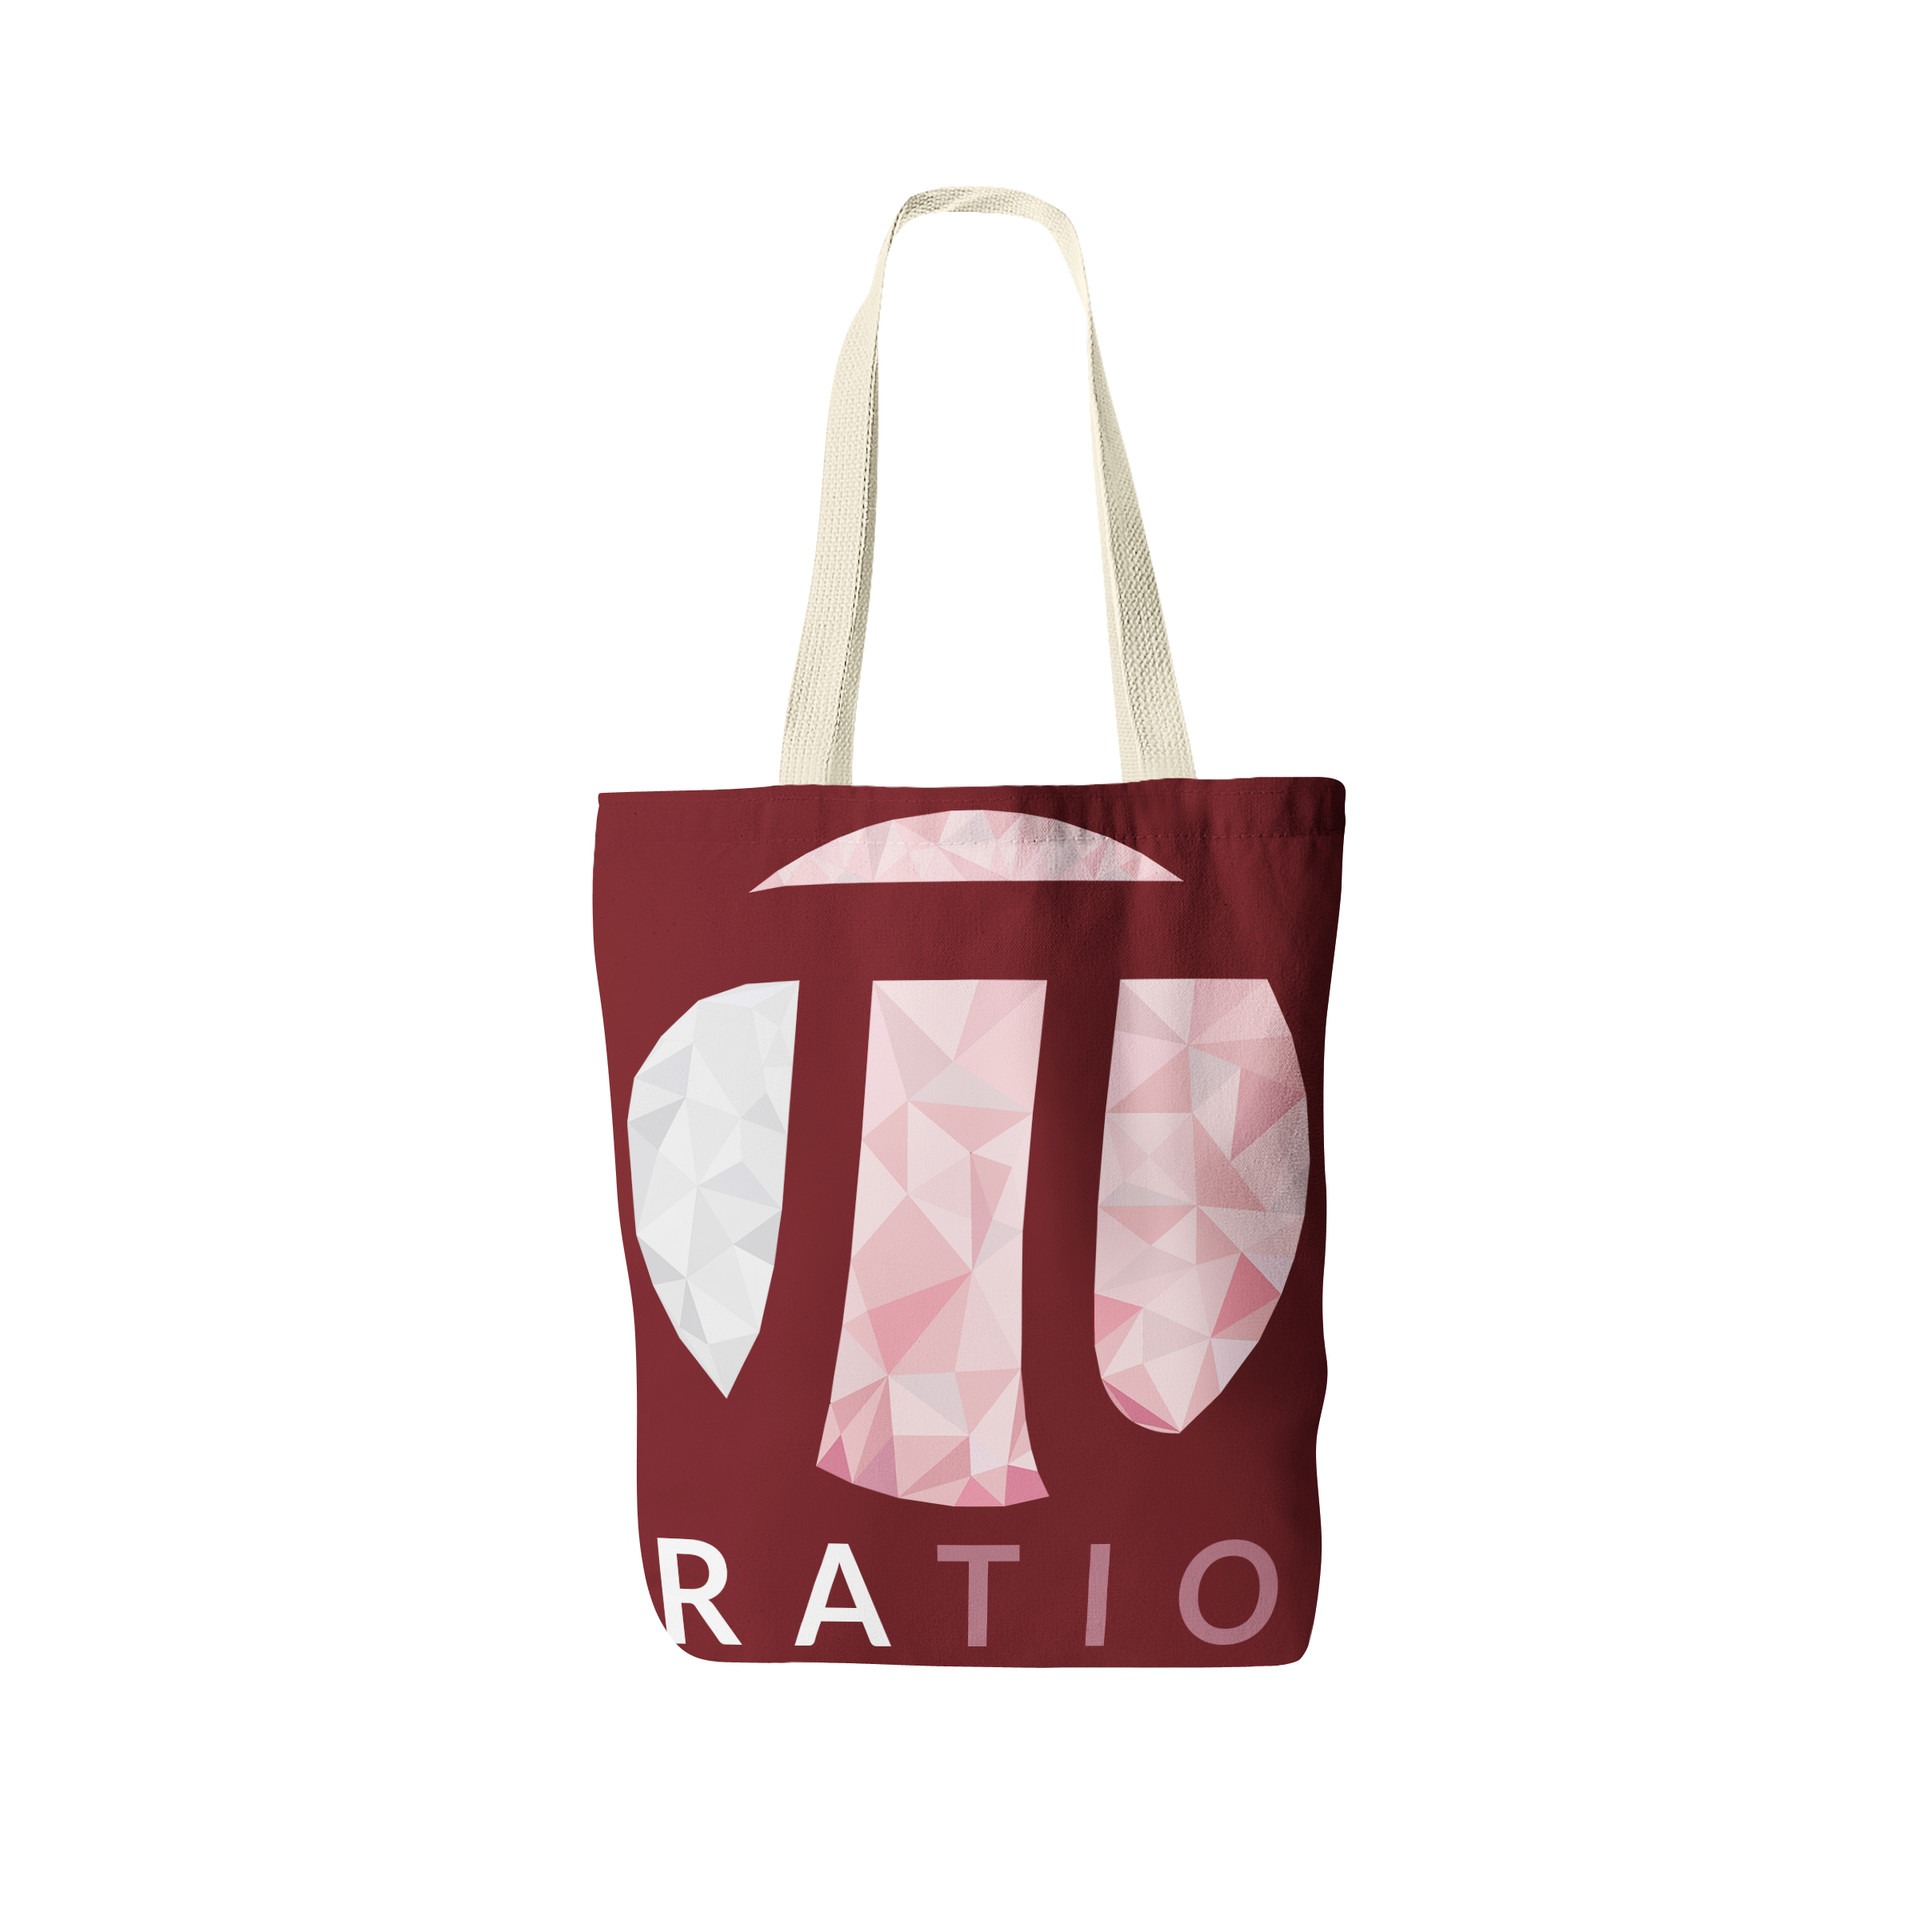 Jerry ubah ratio tote bag front view 2